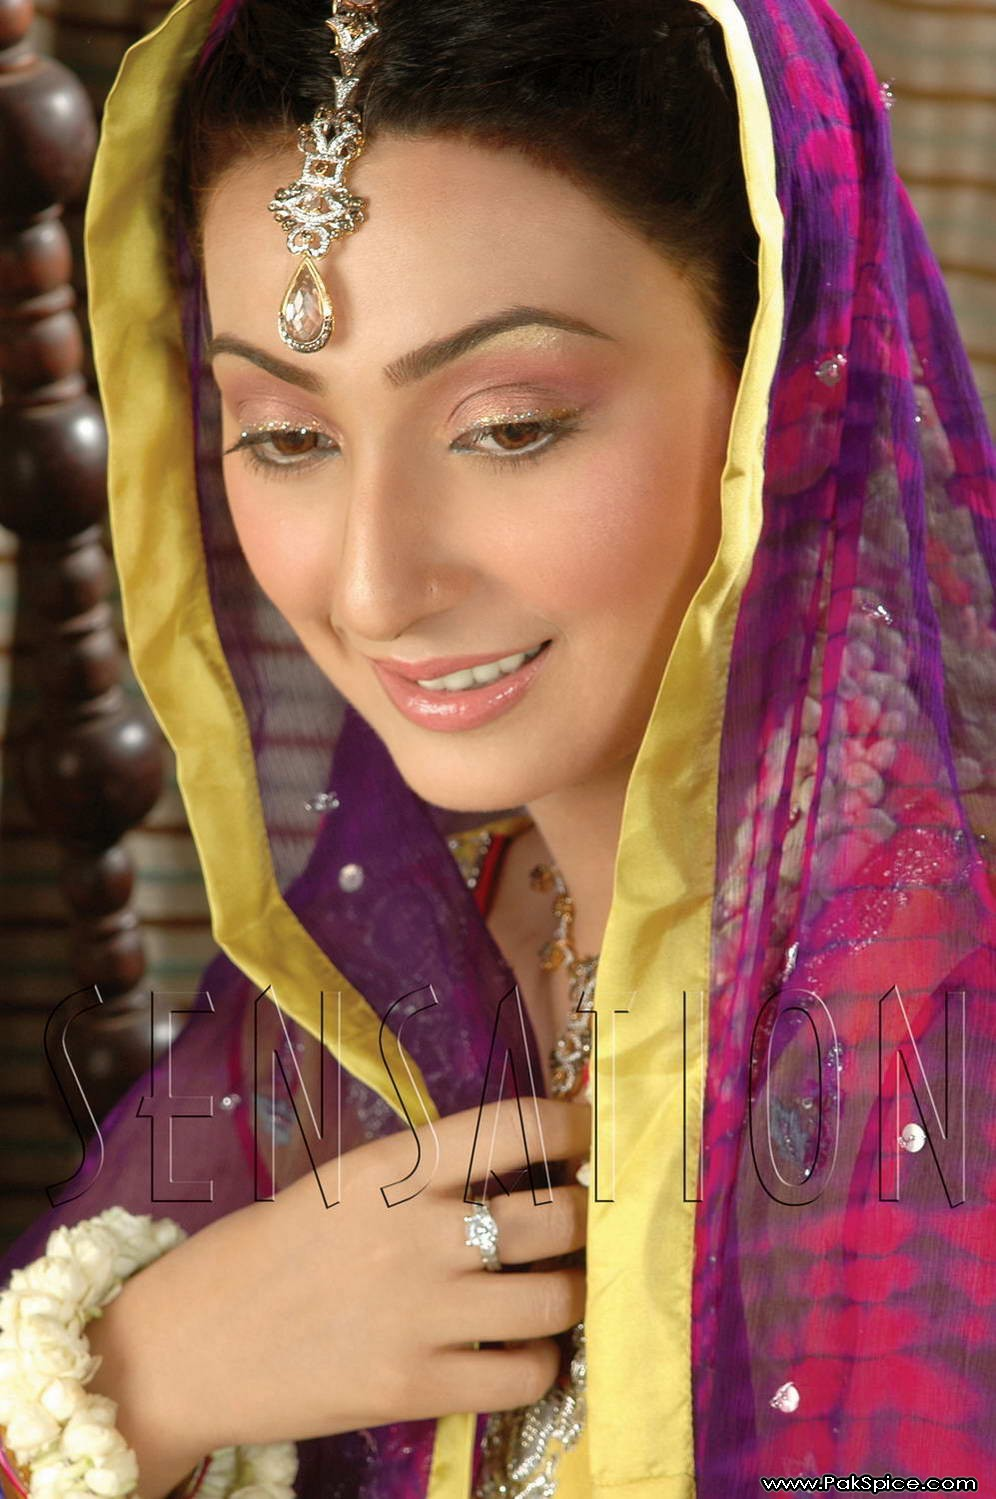 pakistan: pakistani female model ayesha khanayesha khan